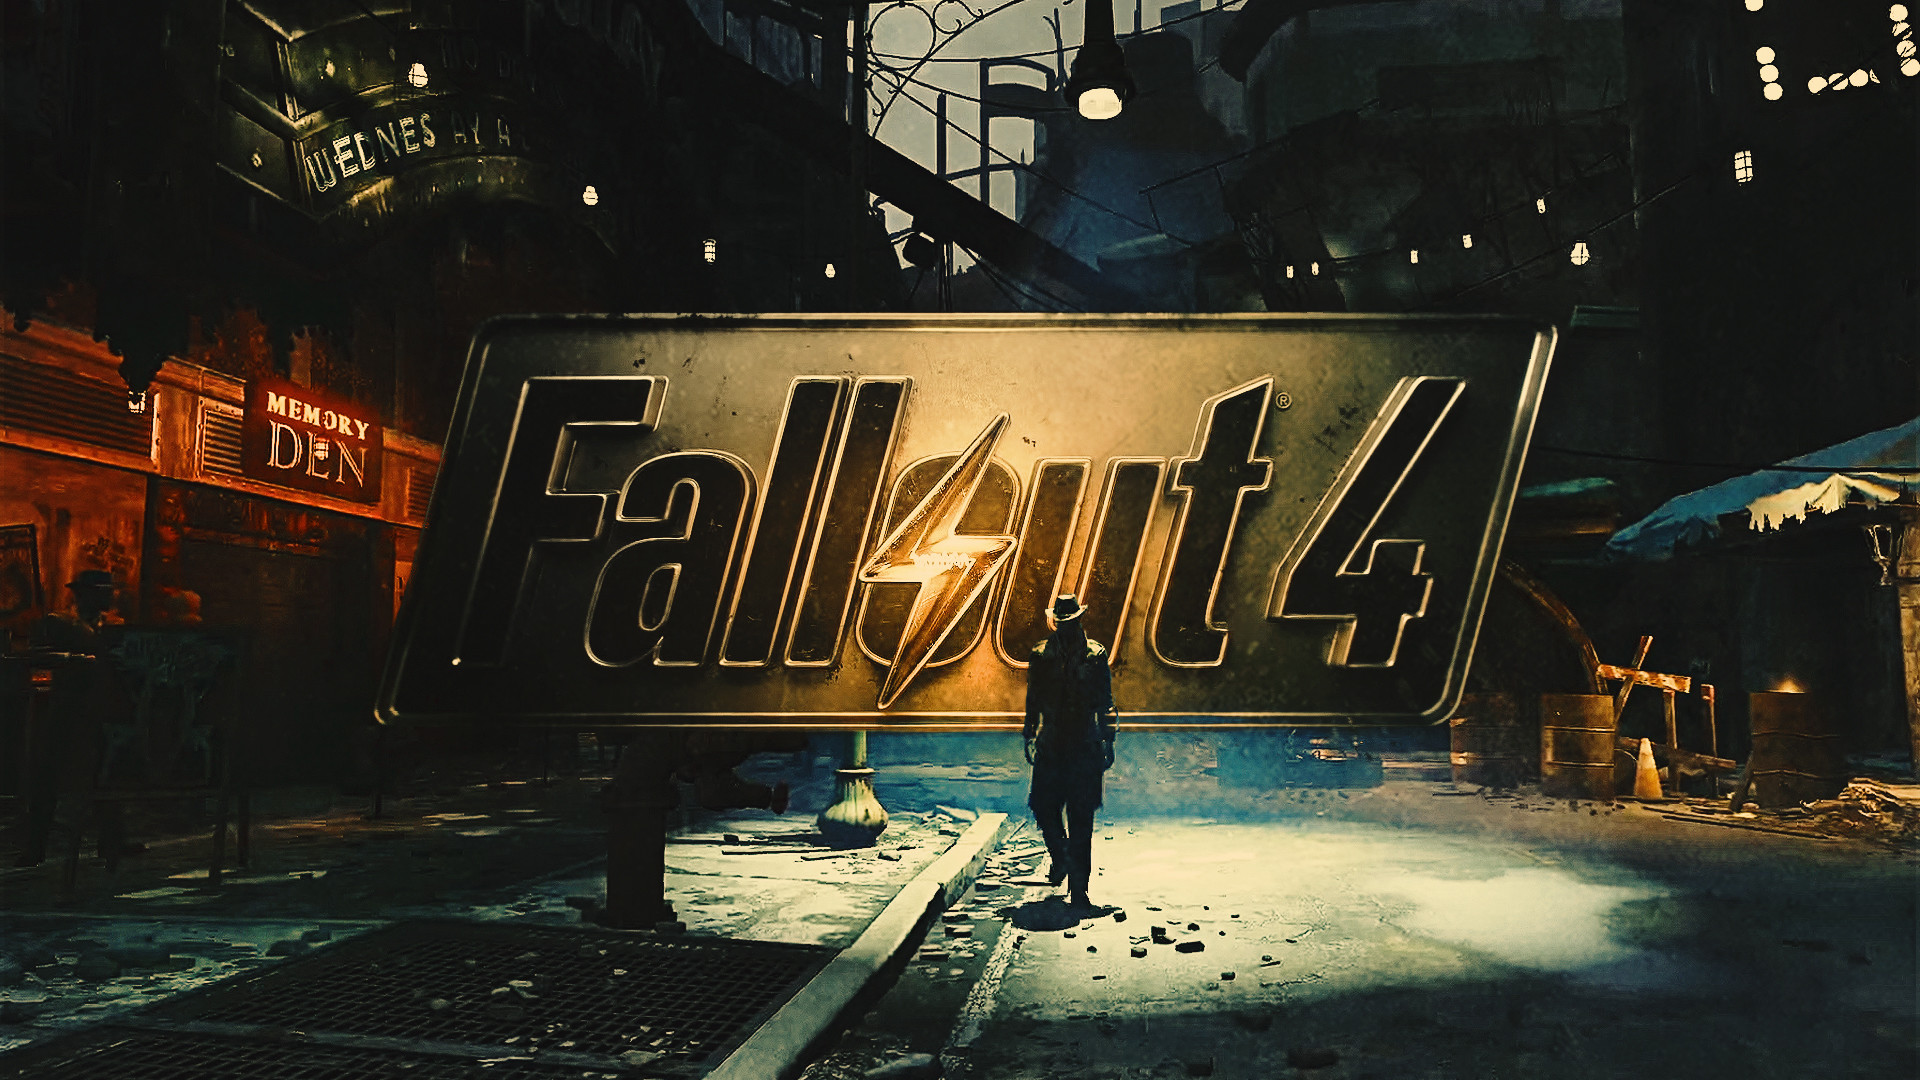 Fallout 4 Desktop Wallpaper (76+ Images